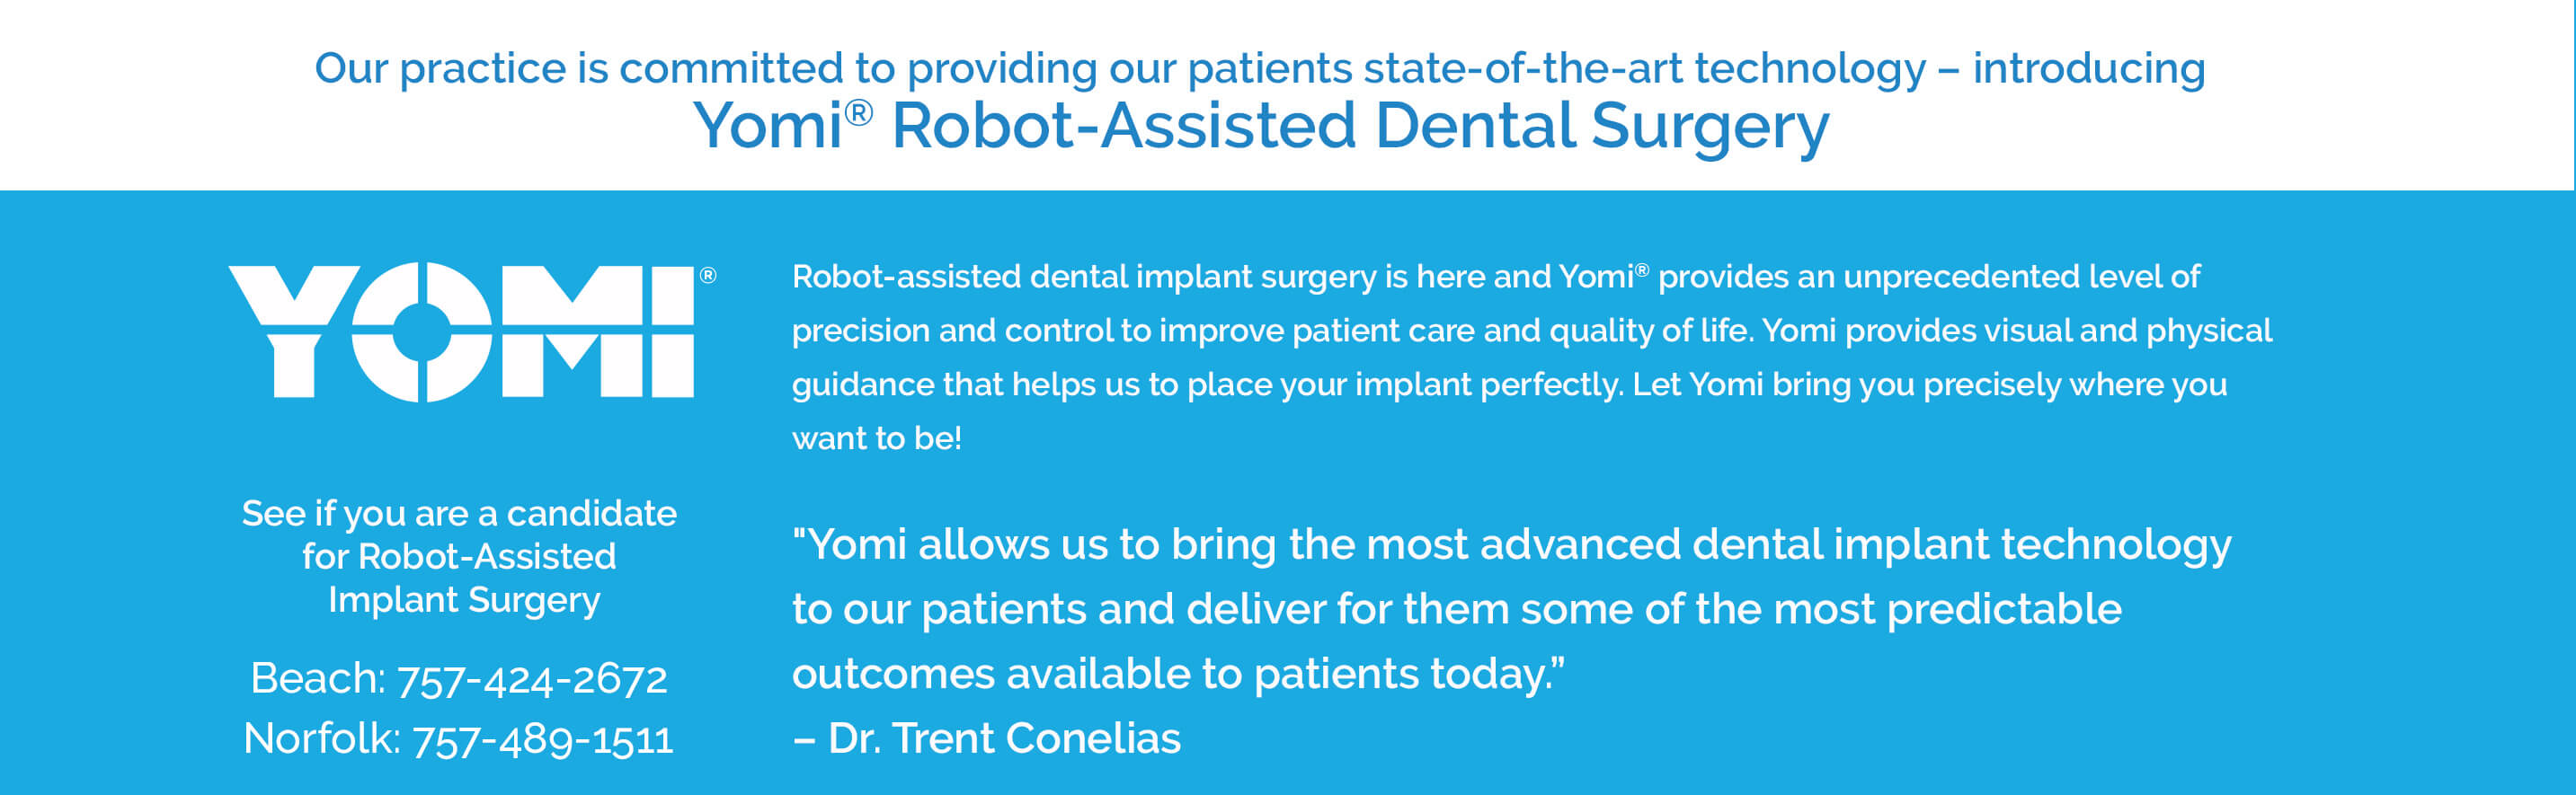 robotic assisted dental surgery